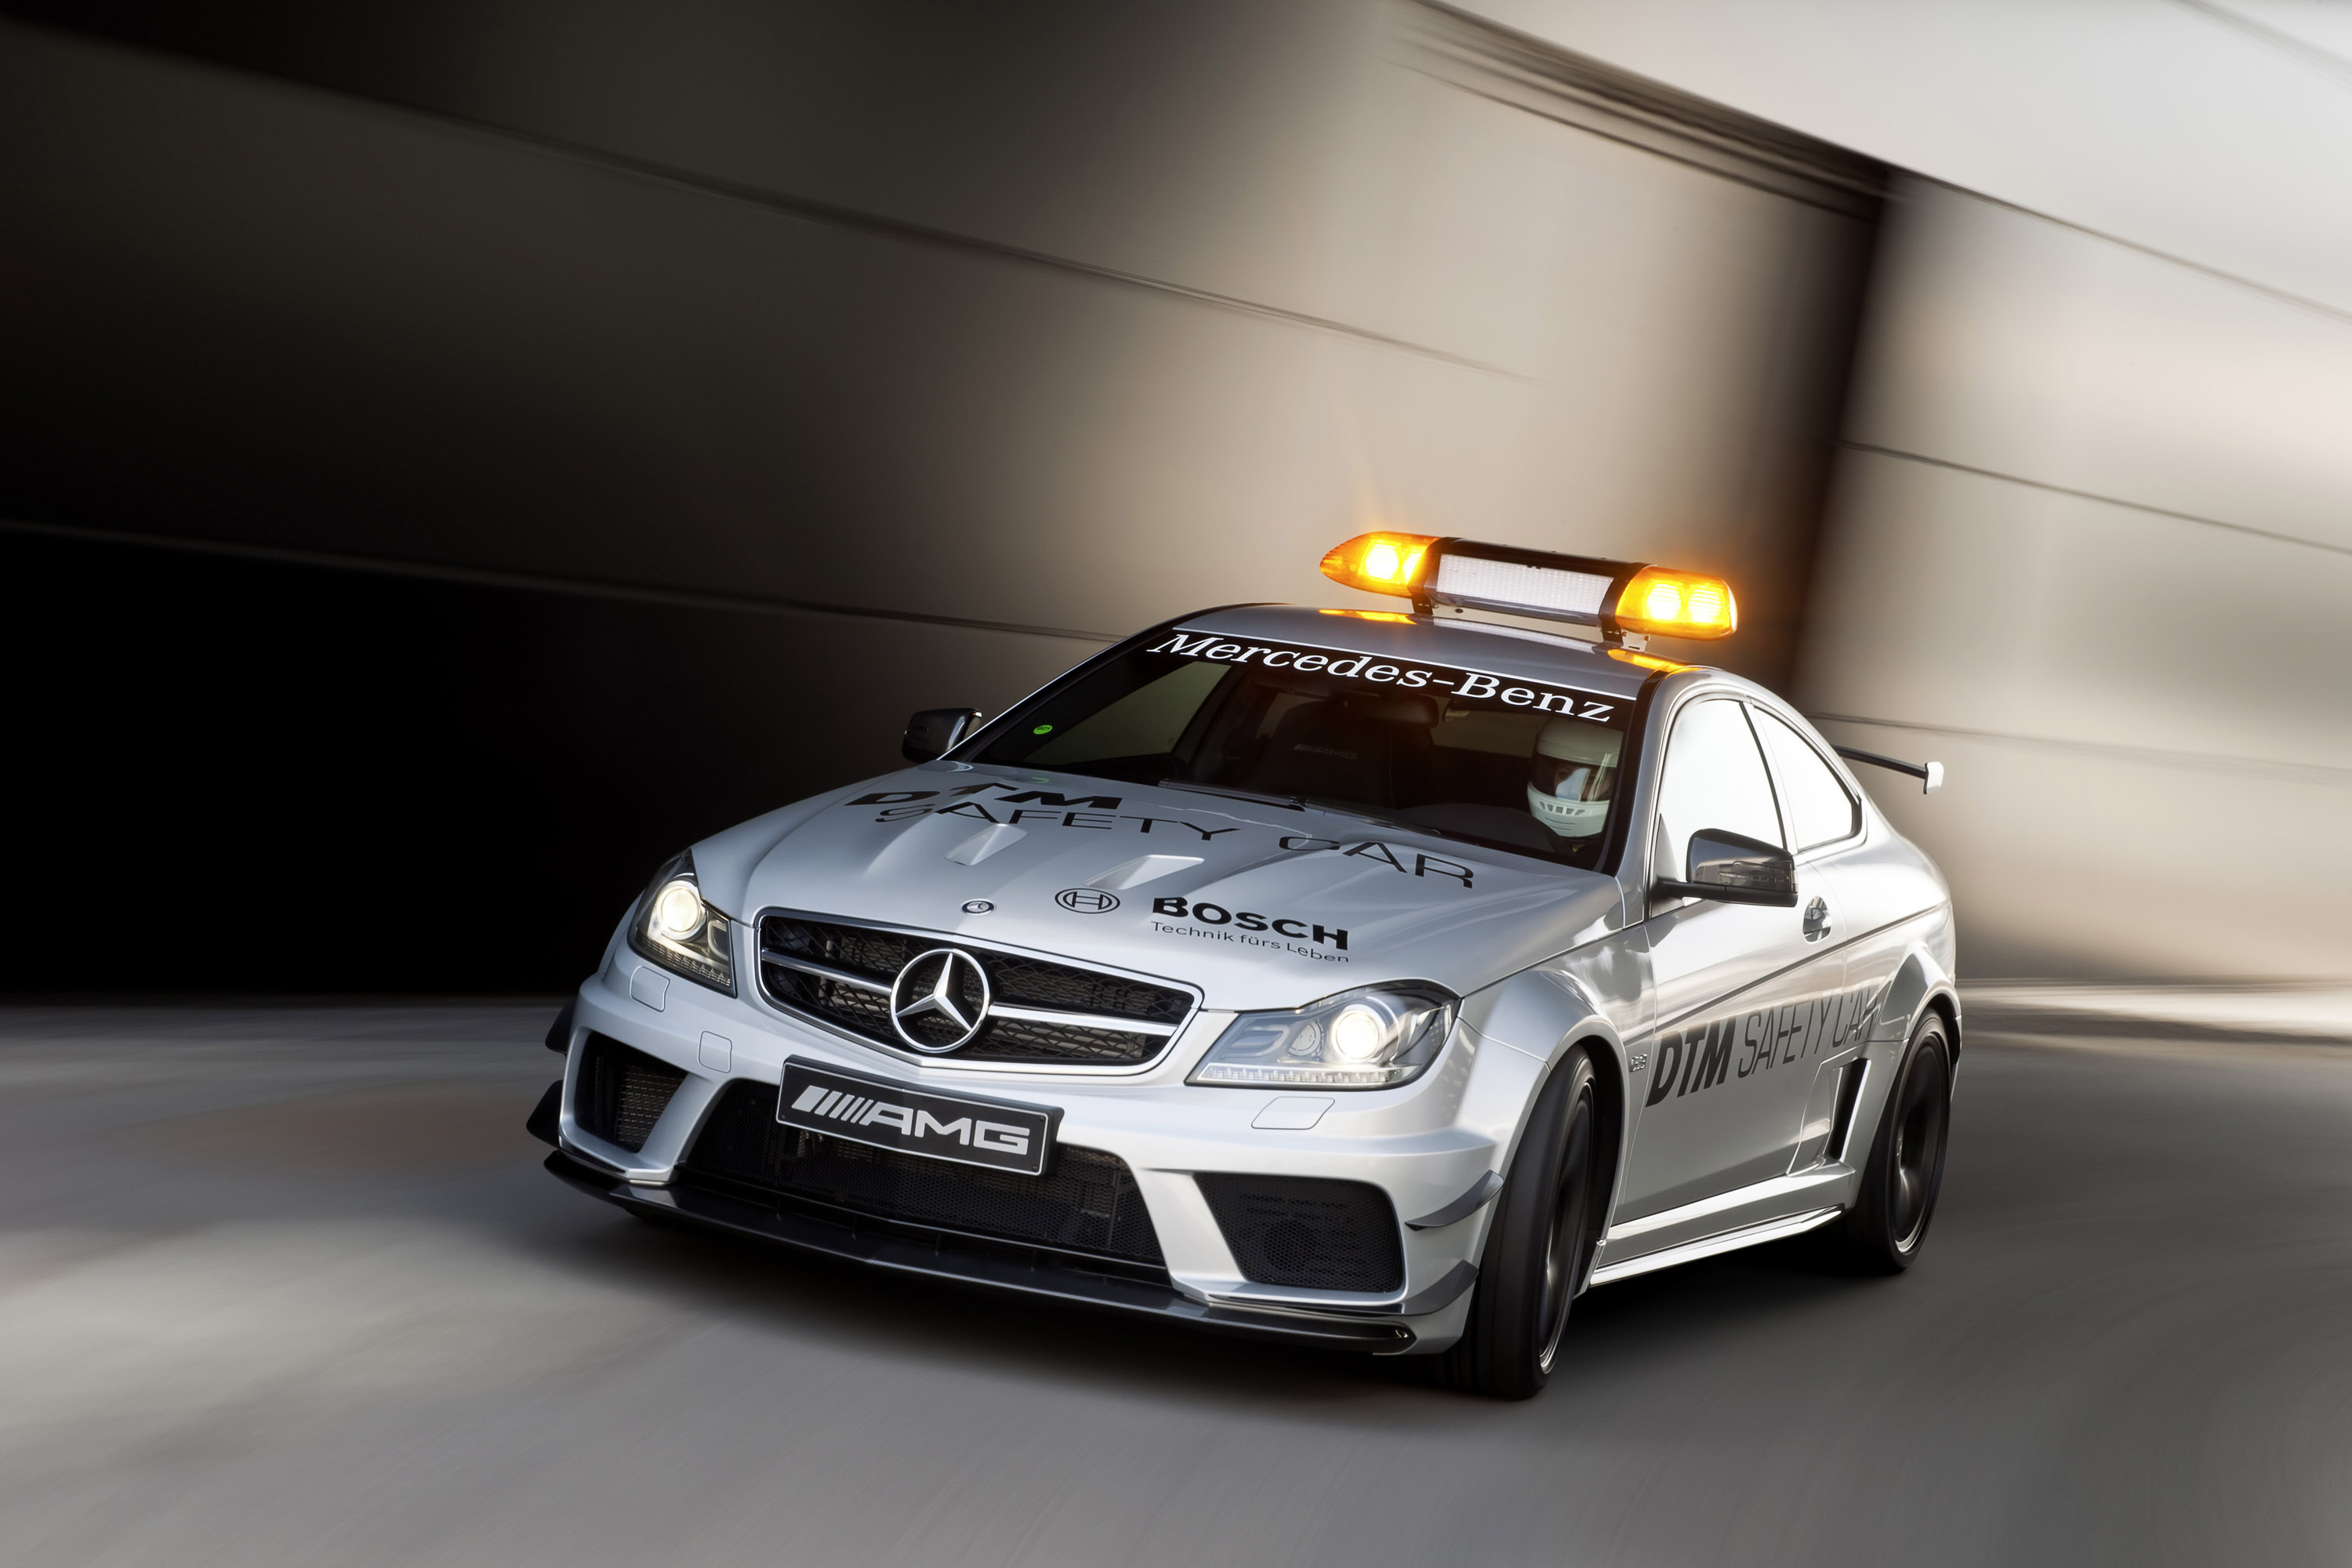 2012 mercedes benz c 63 amg coup black series safety car for Mercedes benz safety